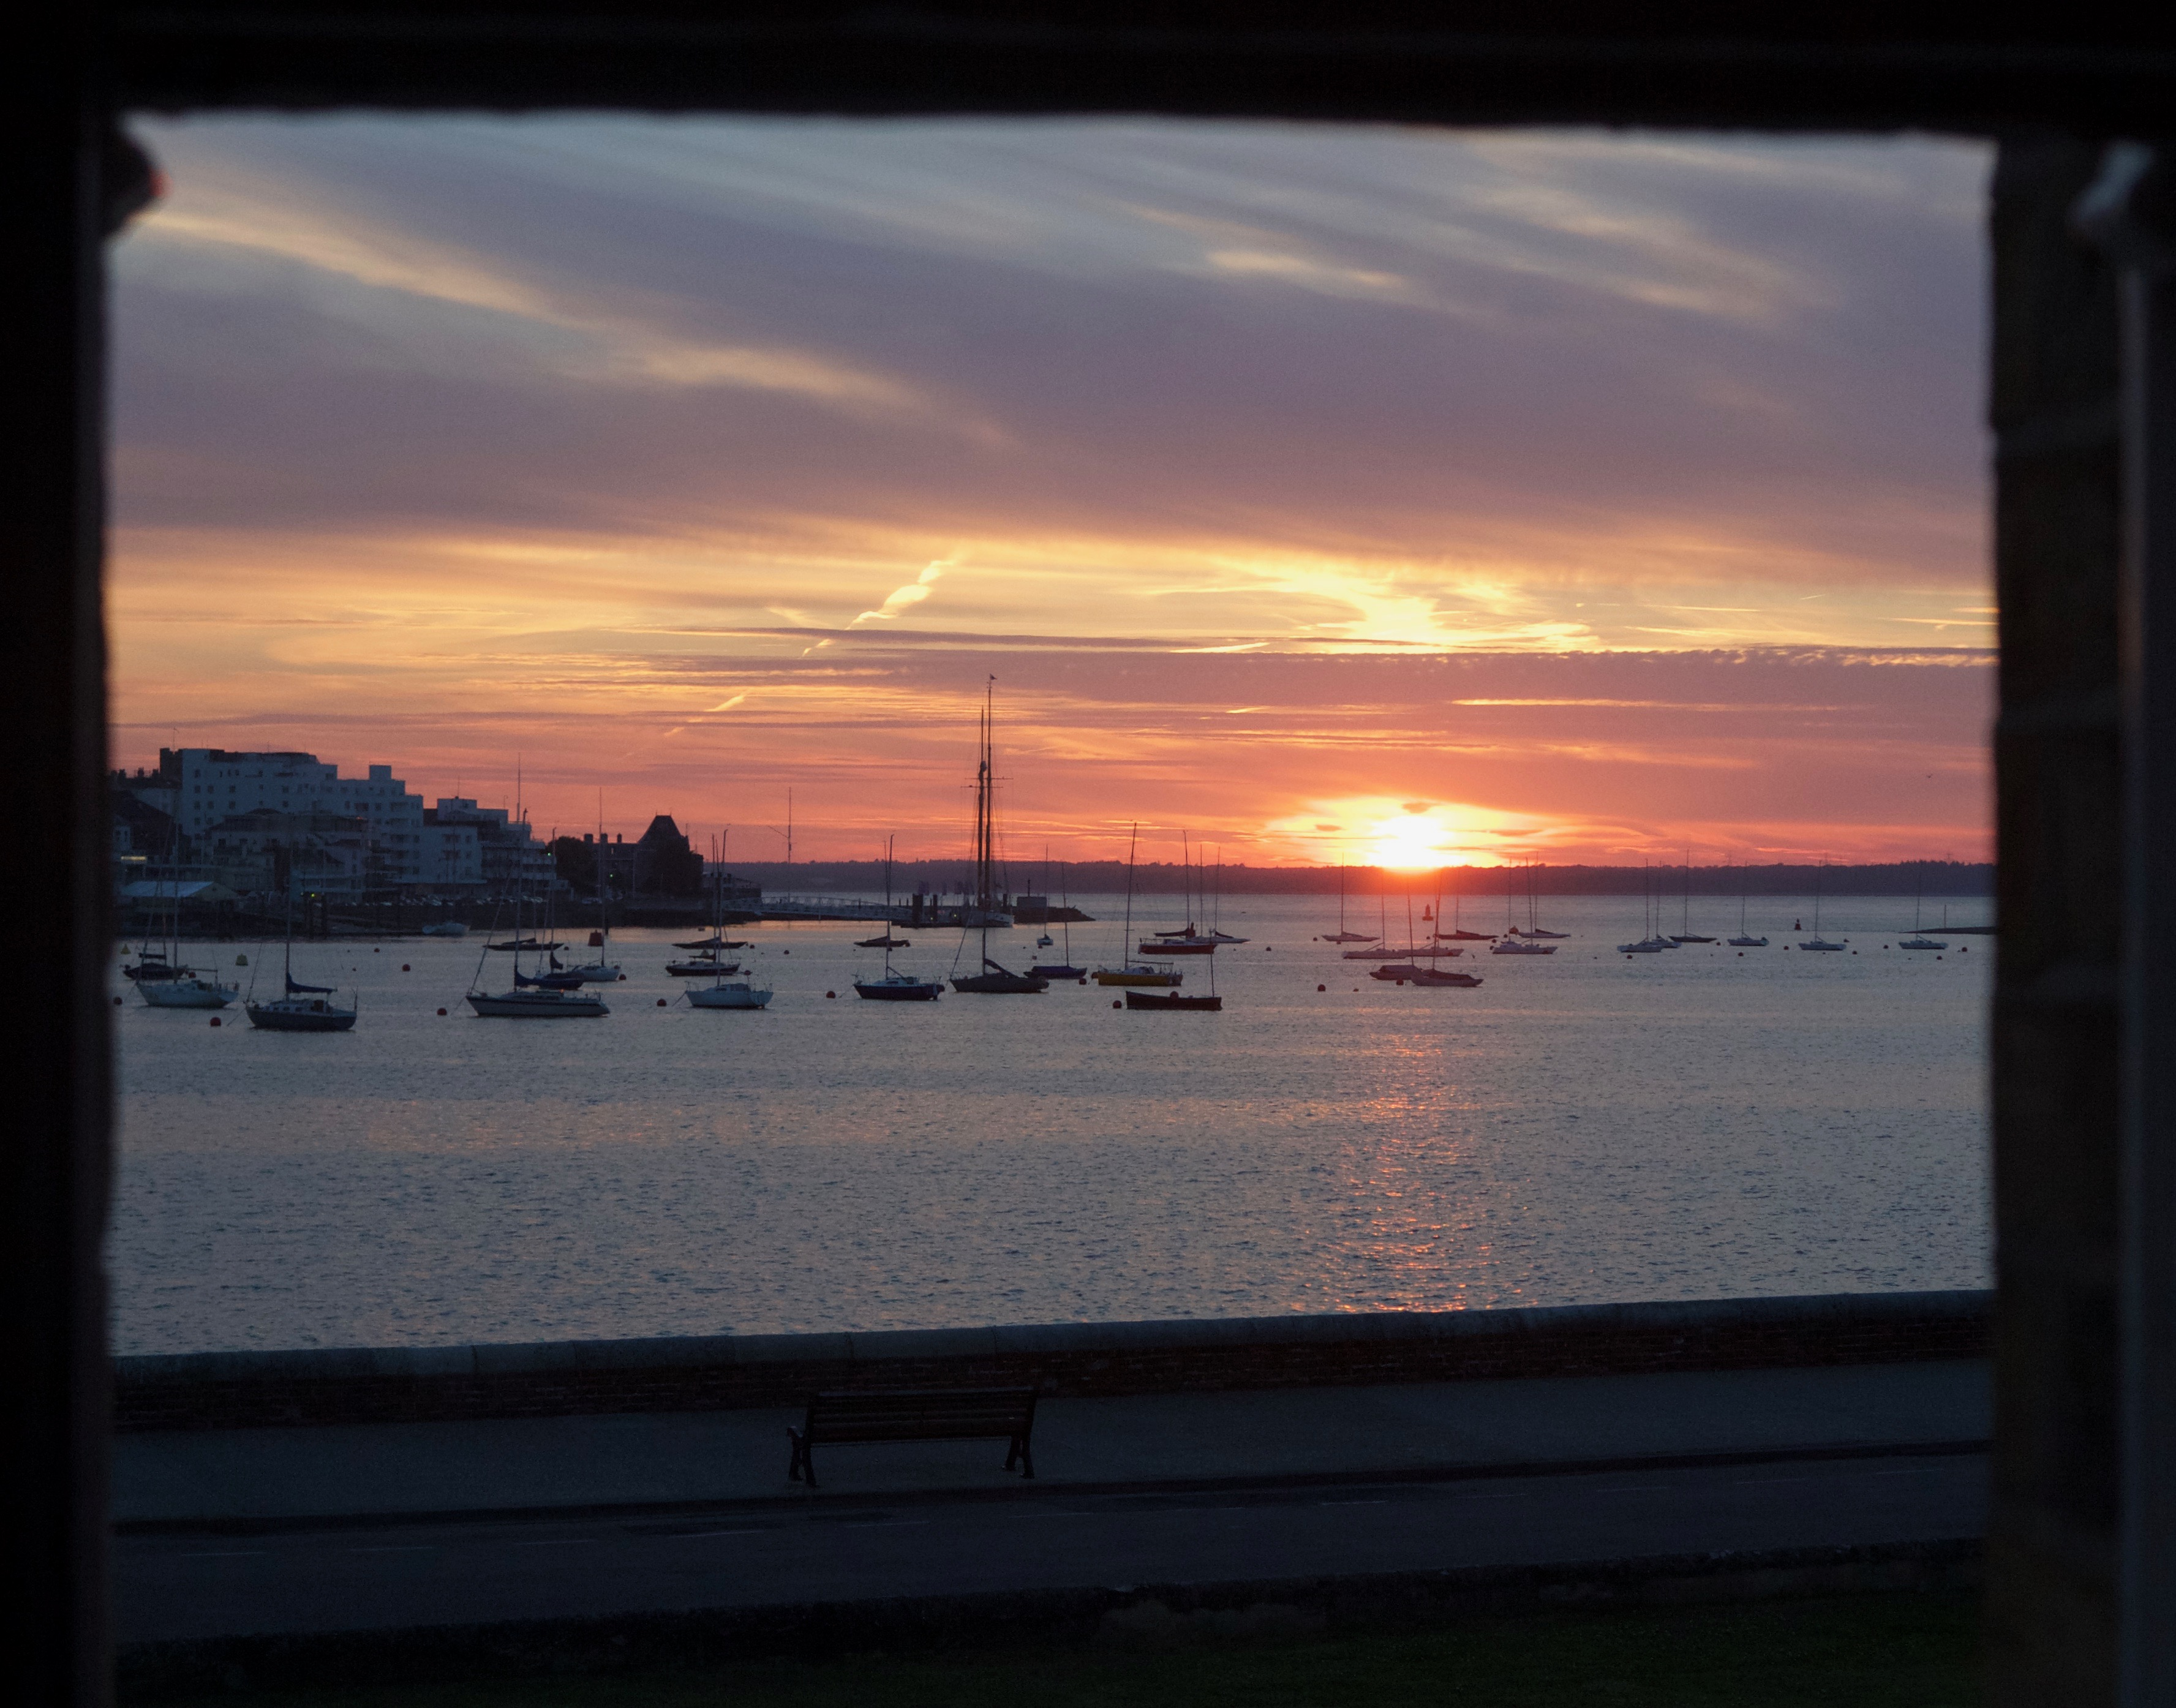 Sunset at Cowes